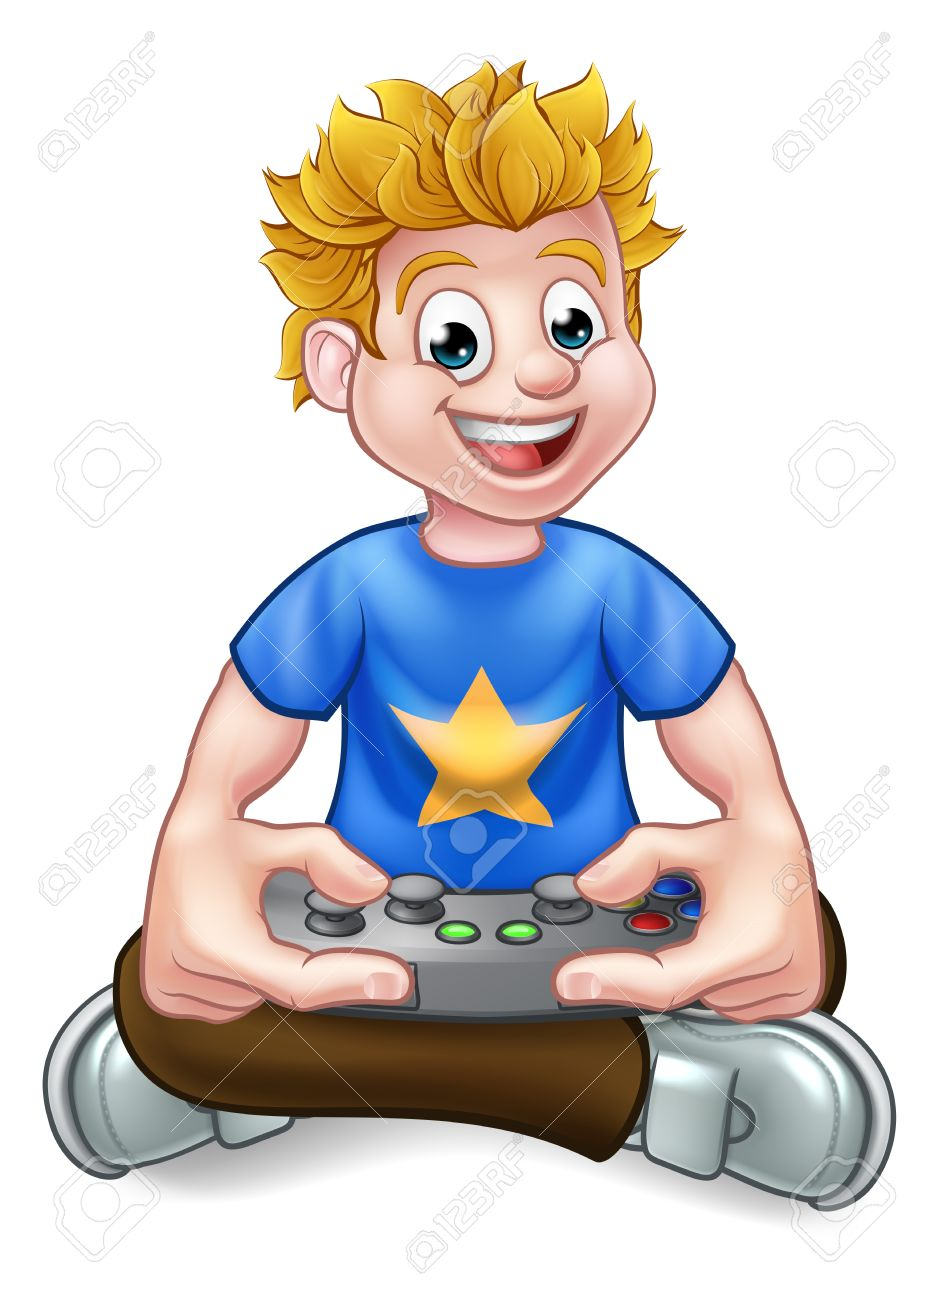 A cartoon gamer having fun playing video games.